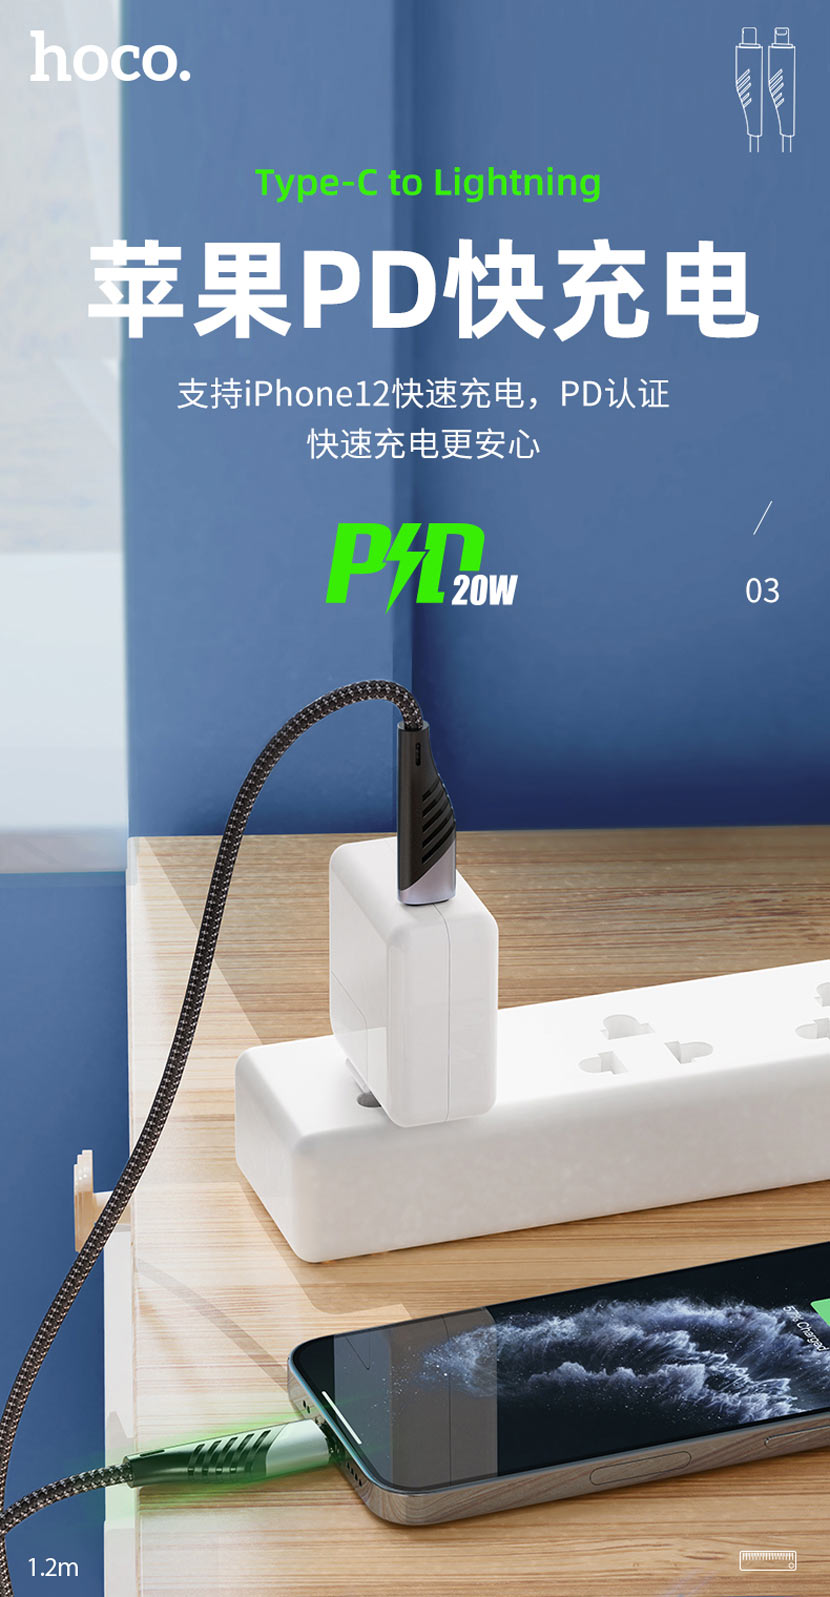 hoco news u95 freeway pd charging data cable type c to lightning cn